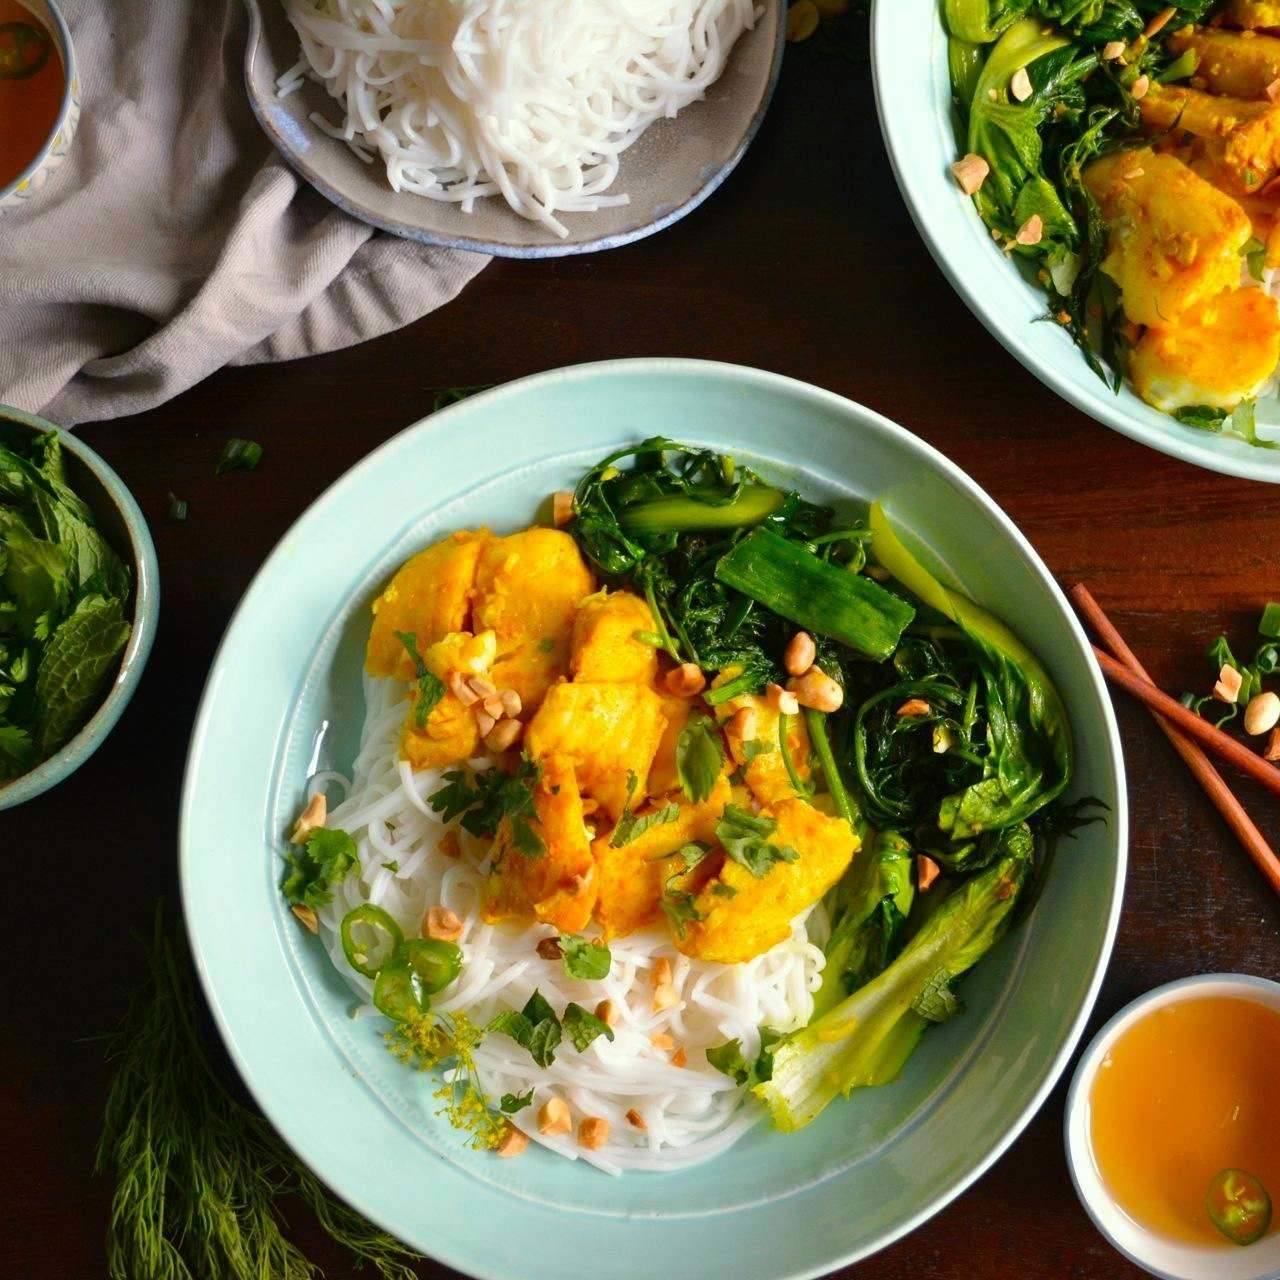 Chả Cá Vietnamese Style Fish With Turmeric Dill Wanderings In My Kitchen